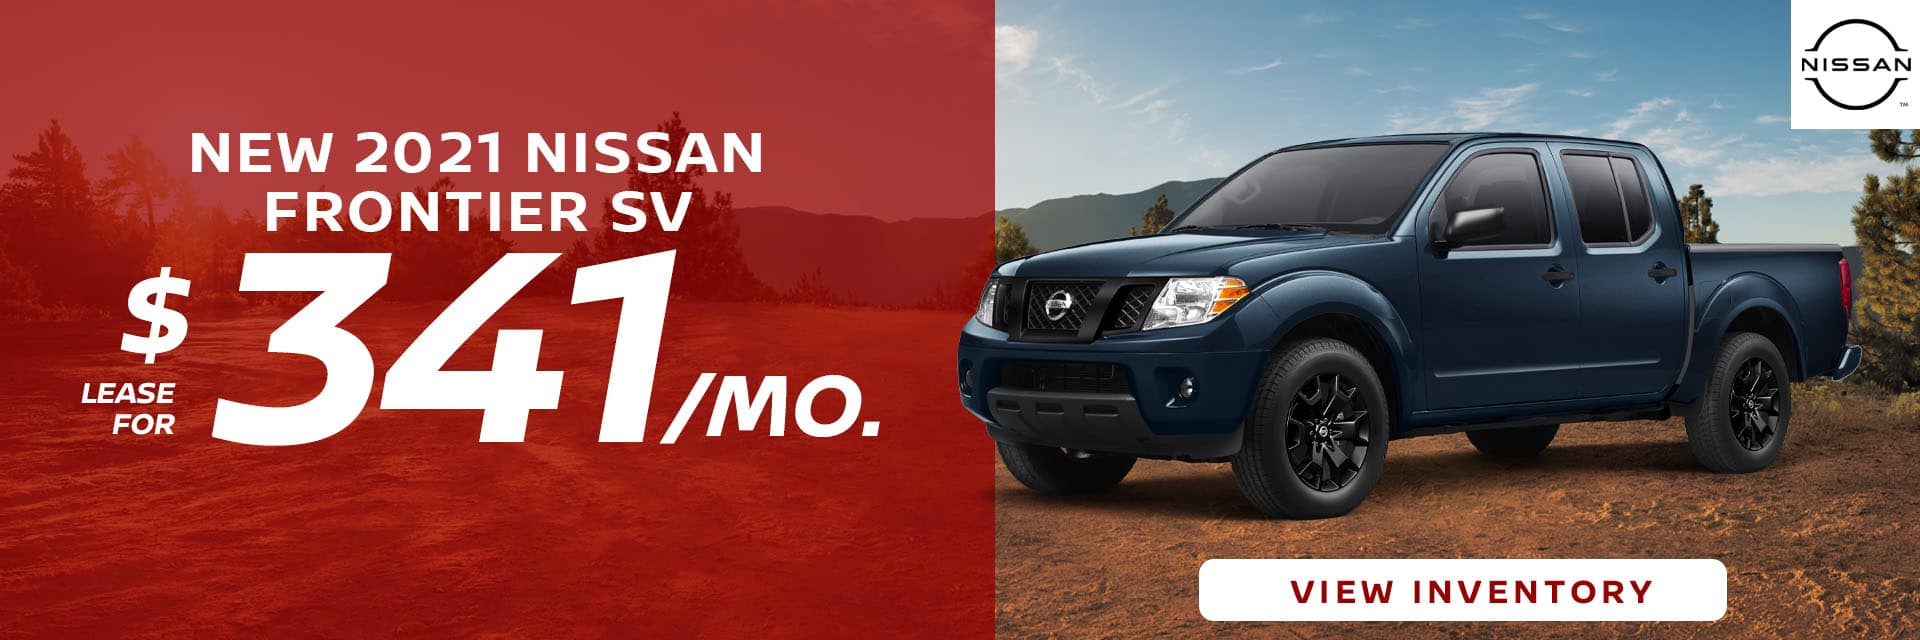 CNSN-July 2021-2021 Nissan Frontier copy